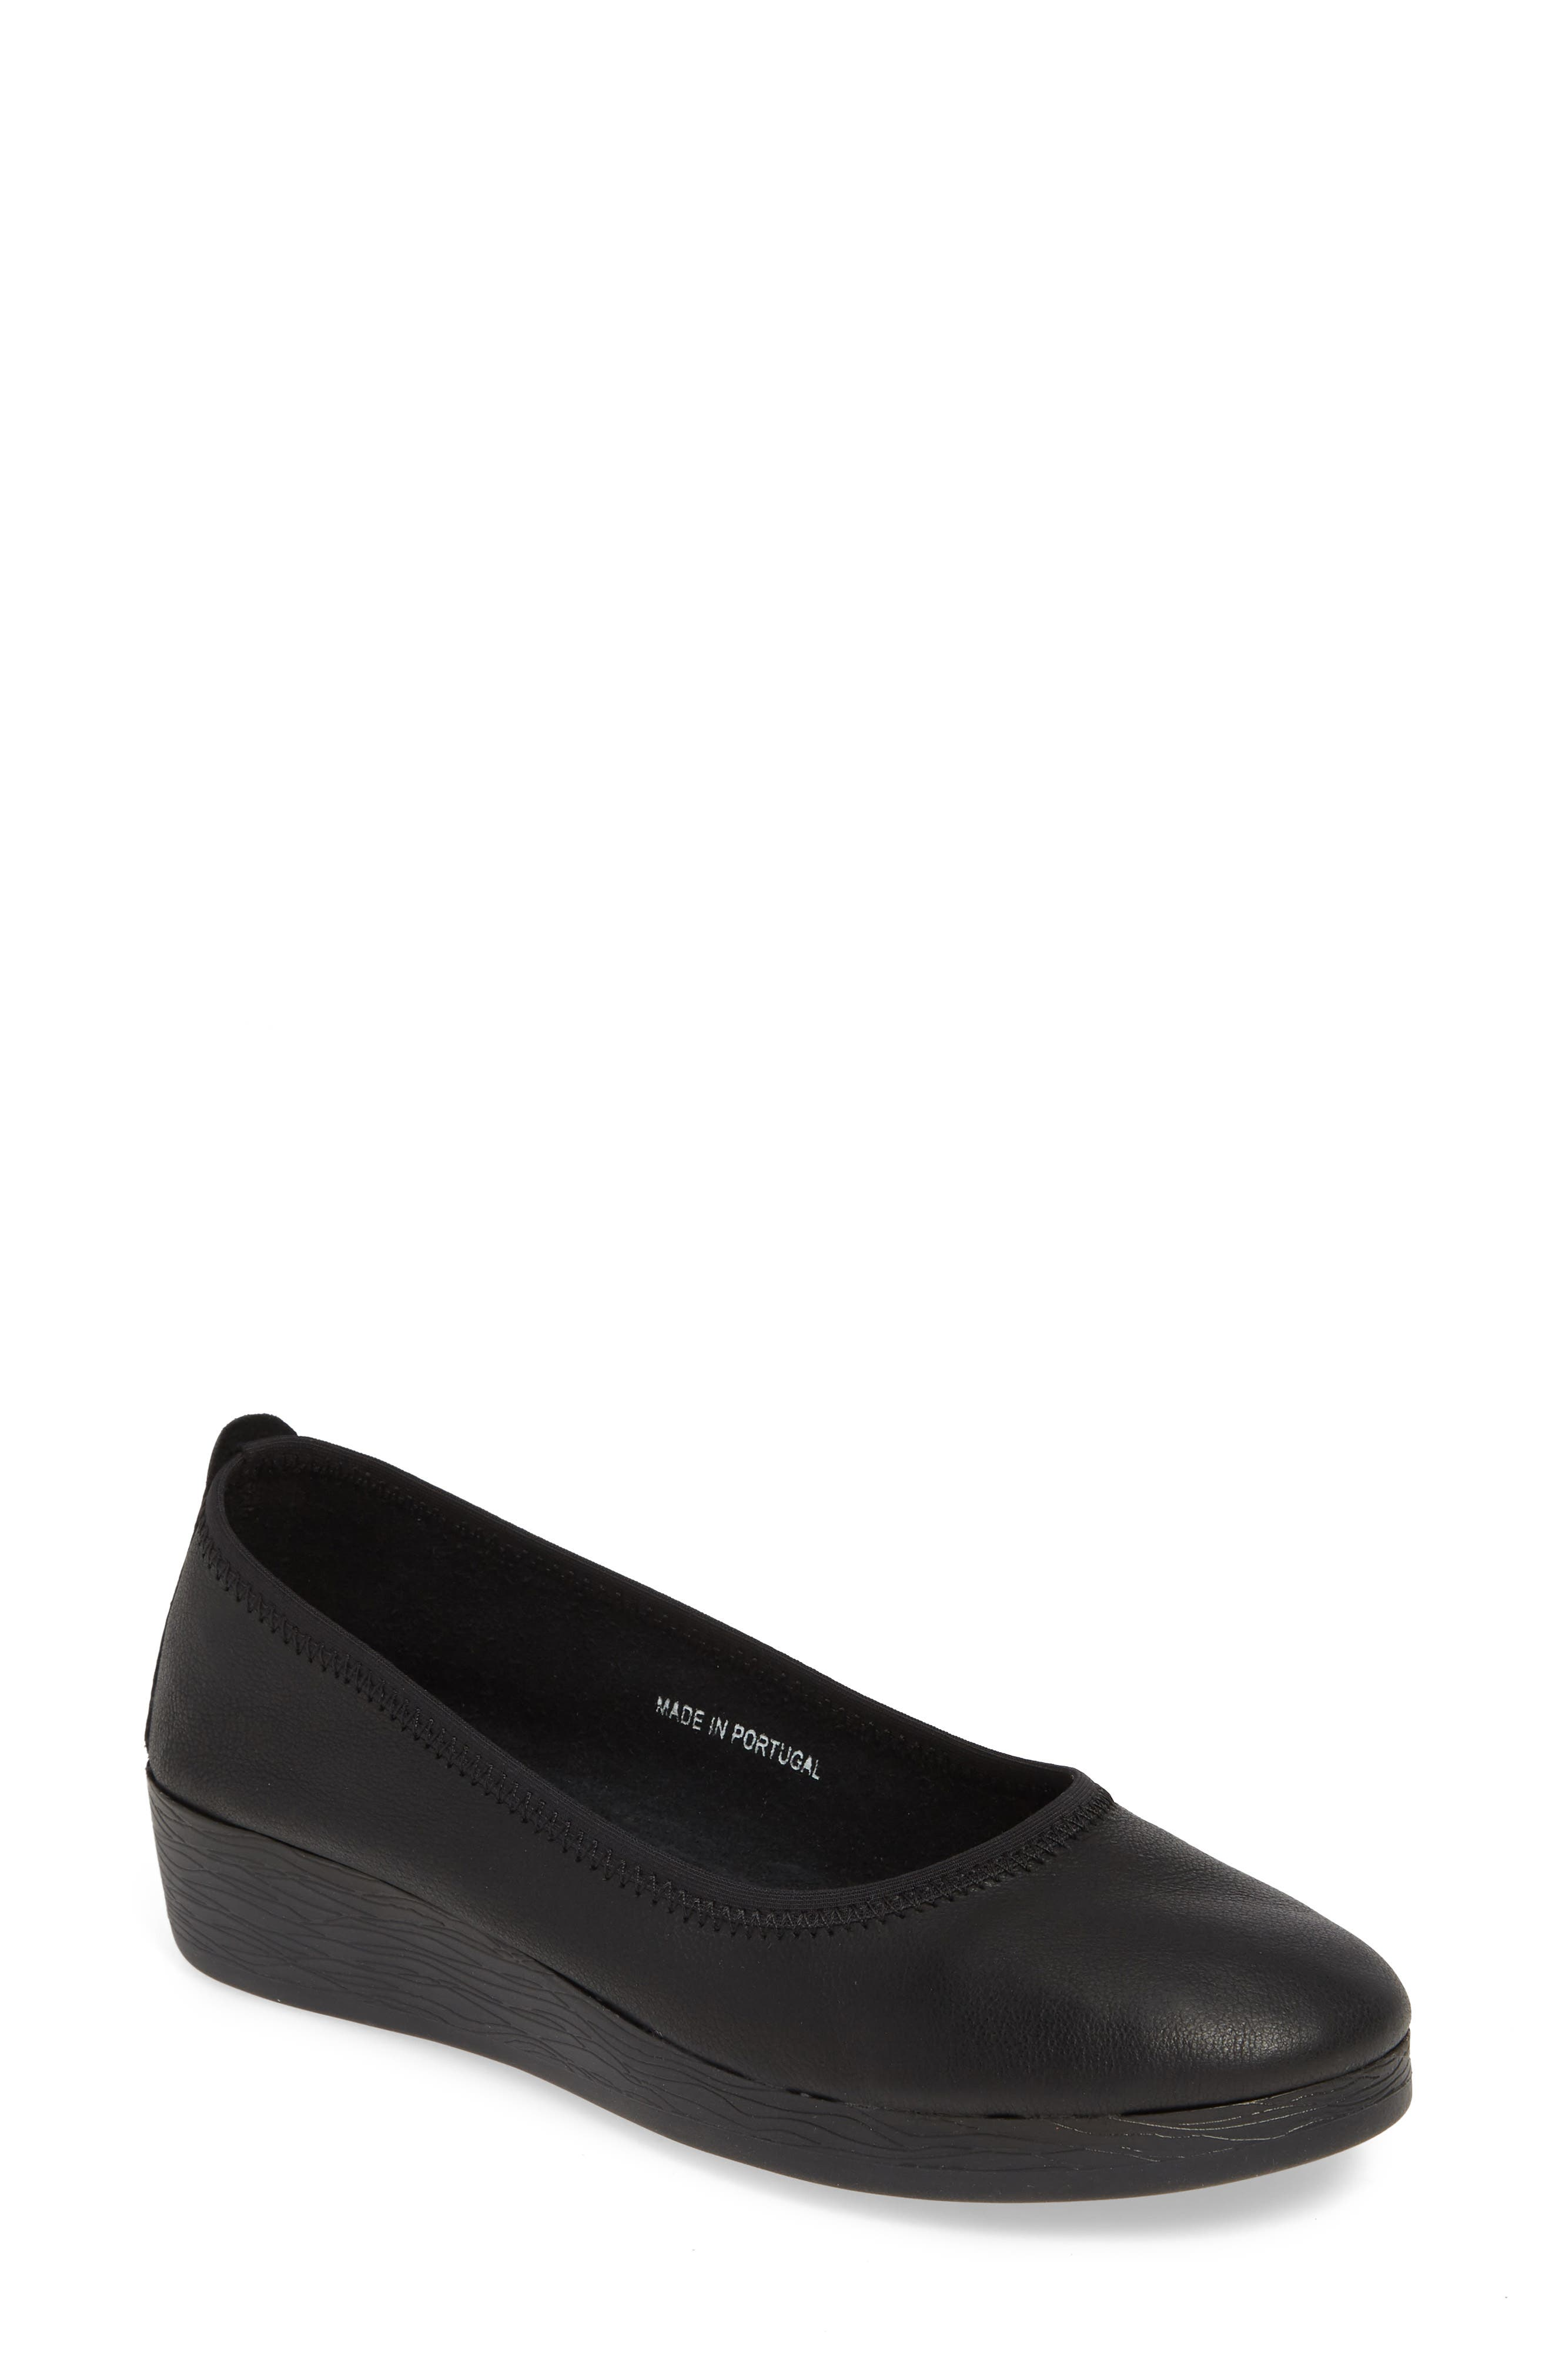 Softinos By Fly London Avo Flat, Black